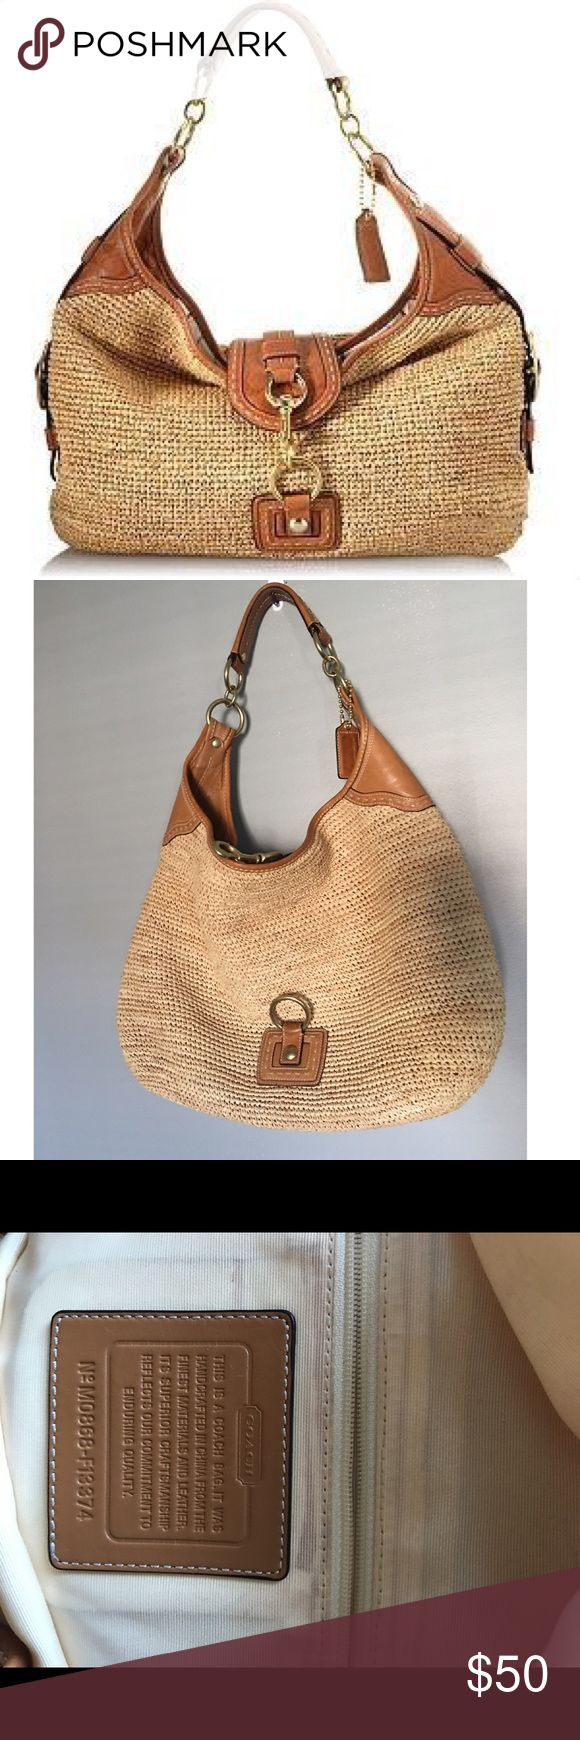 Authentic Oversized Straw Coach hobo bag Authentic Oversized Coach hobo handbag. Leather details on strap. In excellent condition. Coach Bags Hobos